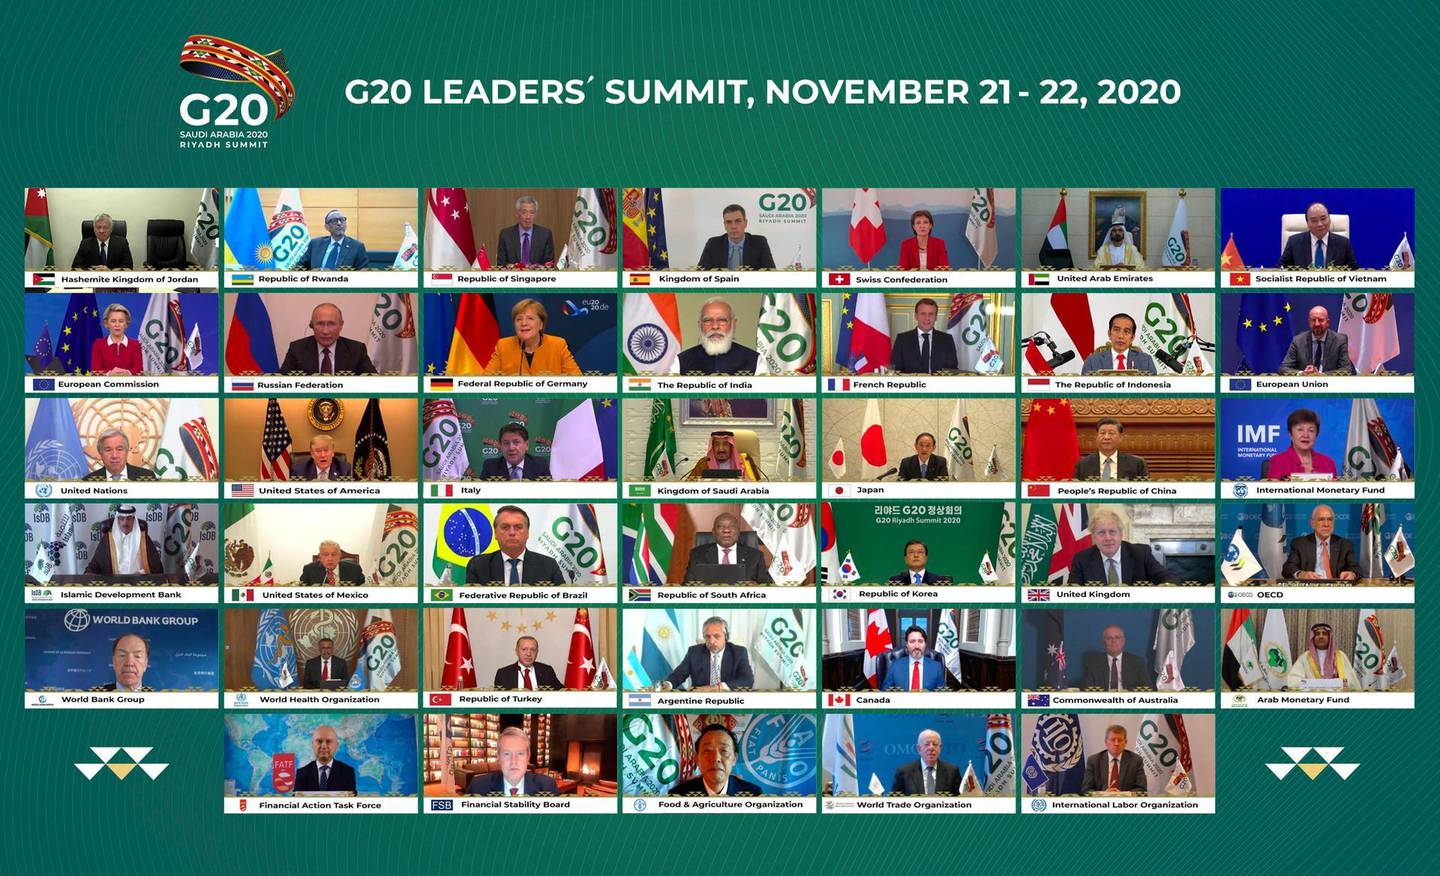 This handout photo provided by G20 Riyadh Summit, shows Saudi King Salman, center, and the rest of world leaders during a virtual G20 summit hosted by Saudi Arabia and held over video conference amid the Covid-19 pandemic, in Riyadh, Saudi Arabia, Saturday, Nov. 21, 2020. (G20 Riyadh Summit via AP)